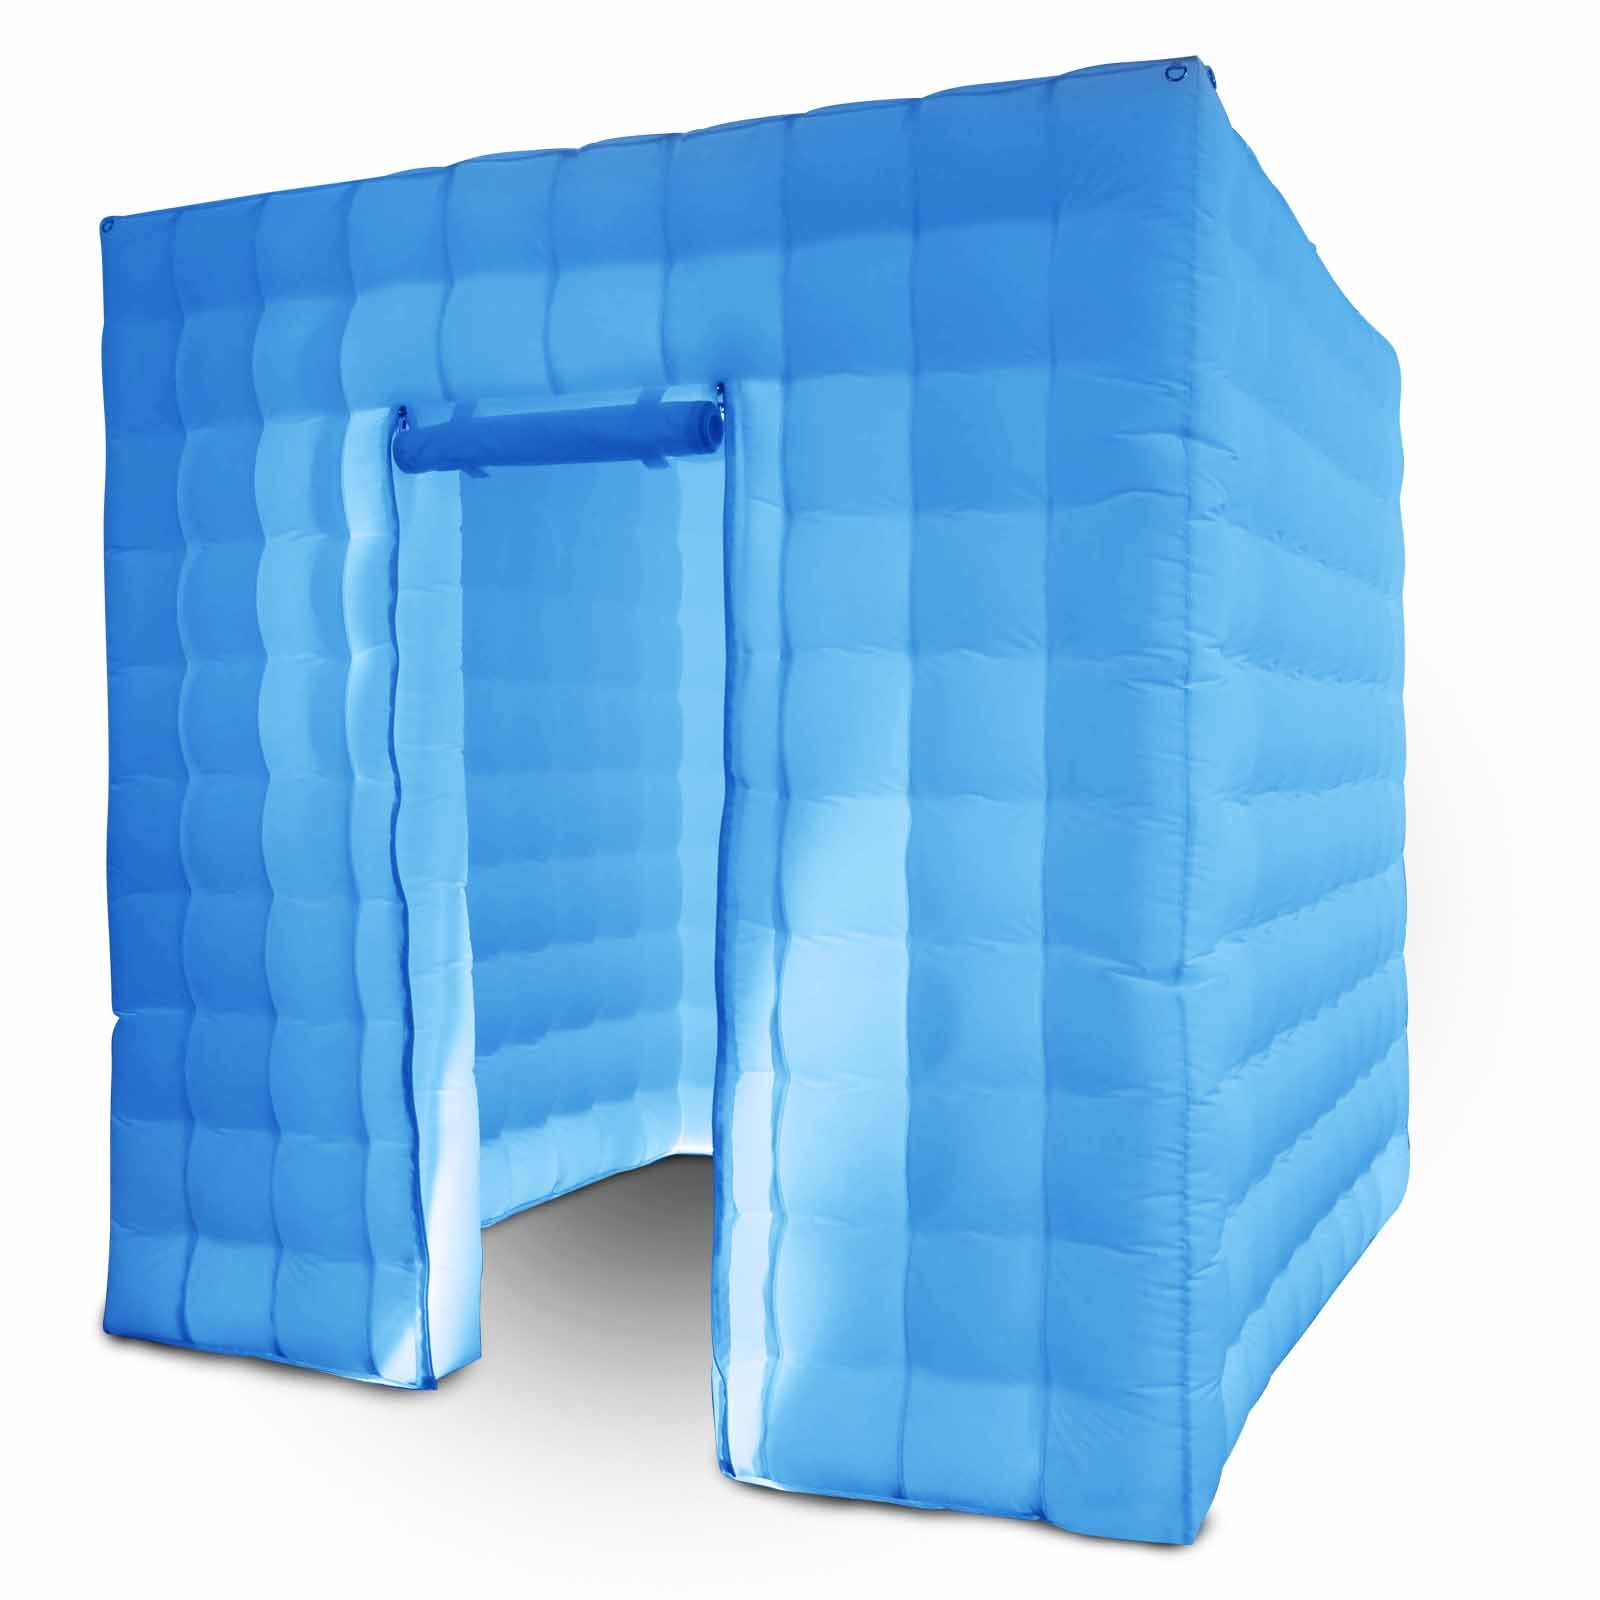 Happybuy Inflatable Photo Booth 1 Doors Inflatable Photo Booth Enclosure 8.2 x 8.2ft Portable Inflatable LED Photobooth with Inner Air Blower Great for Parties Weddings Anniversary Birthdays Parties by Happybuy